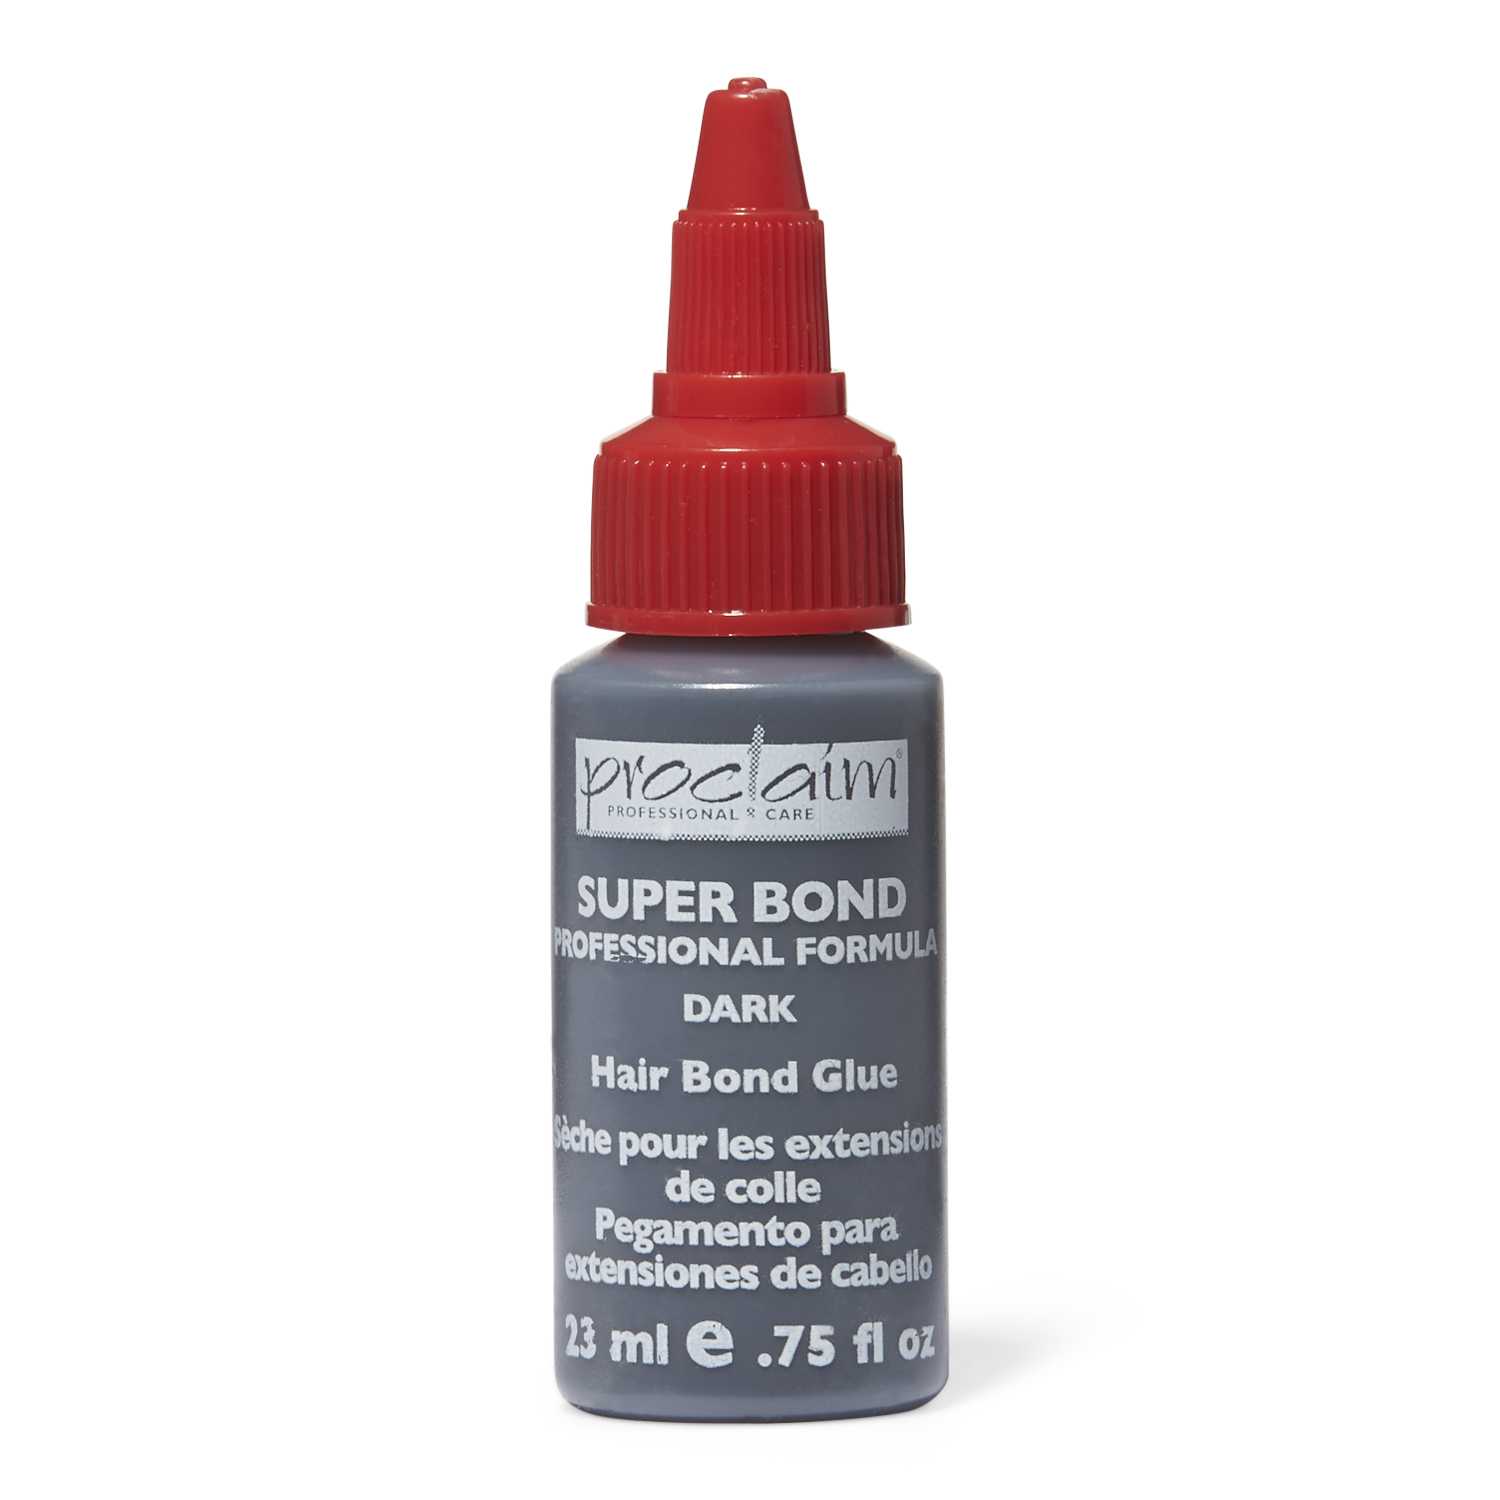 Proclaim Super Bond Hair Glue Dark